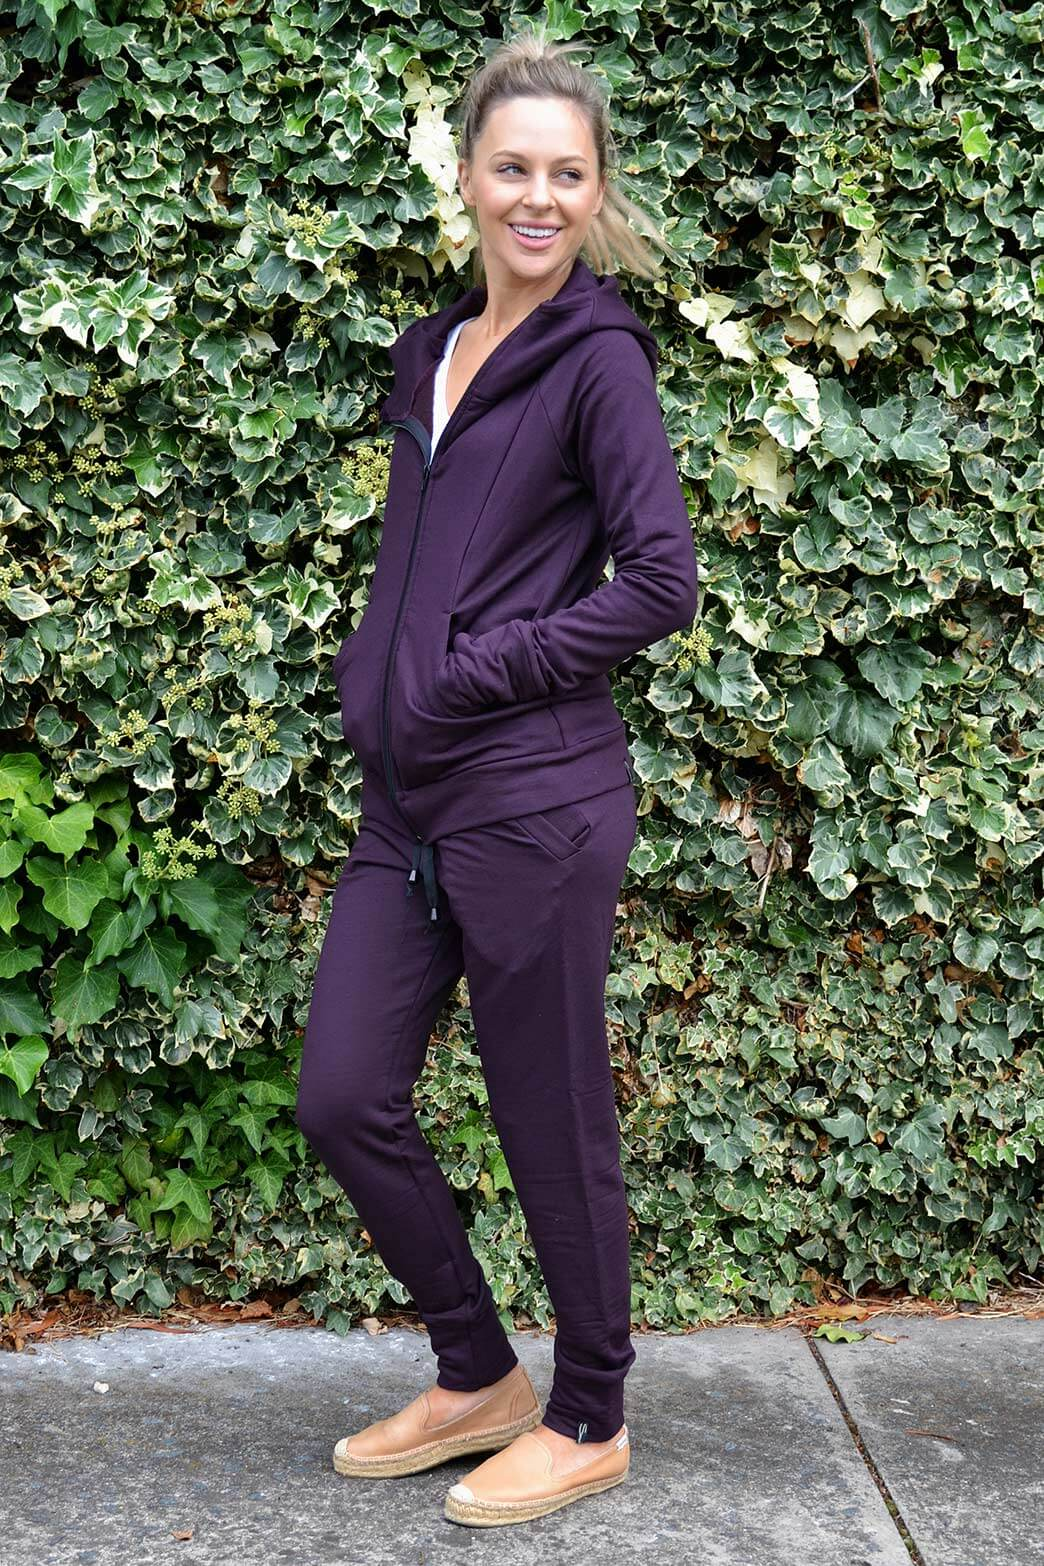 Track Set - Women's Plum Purple Wool Track Set of Lounge Pants and Fitted Hoody Jacket - Smitten Merino Tasmania Australia